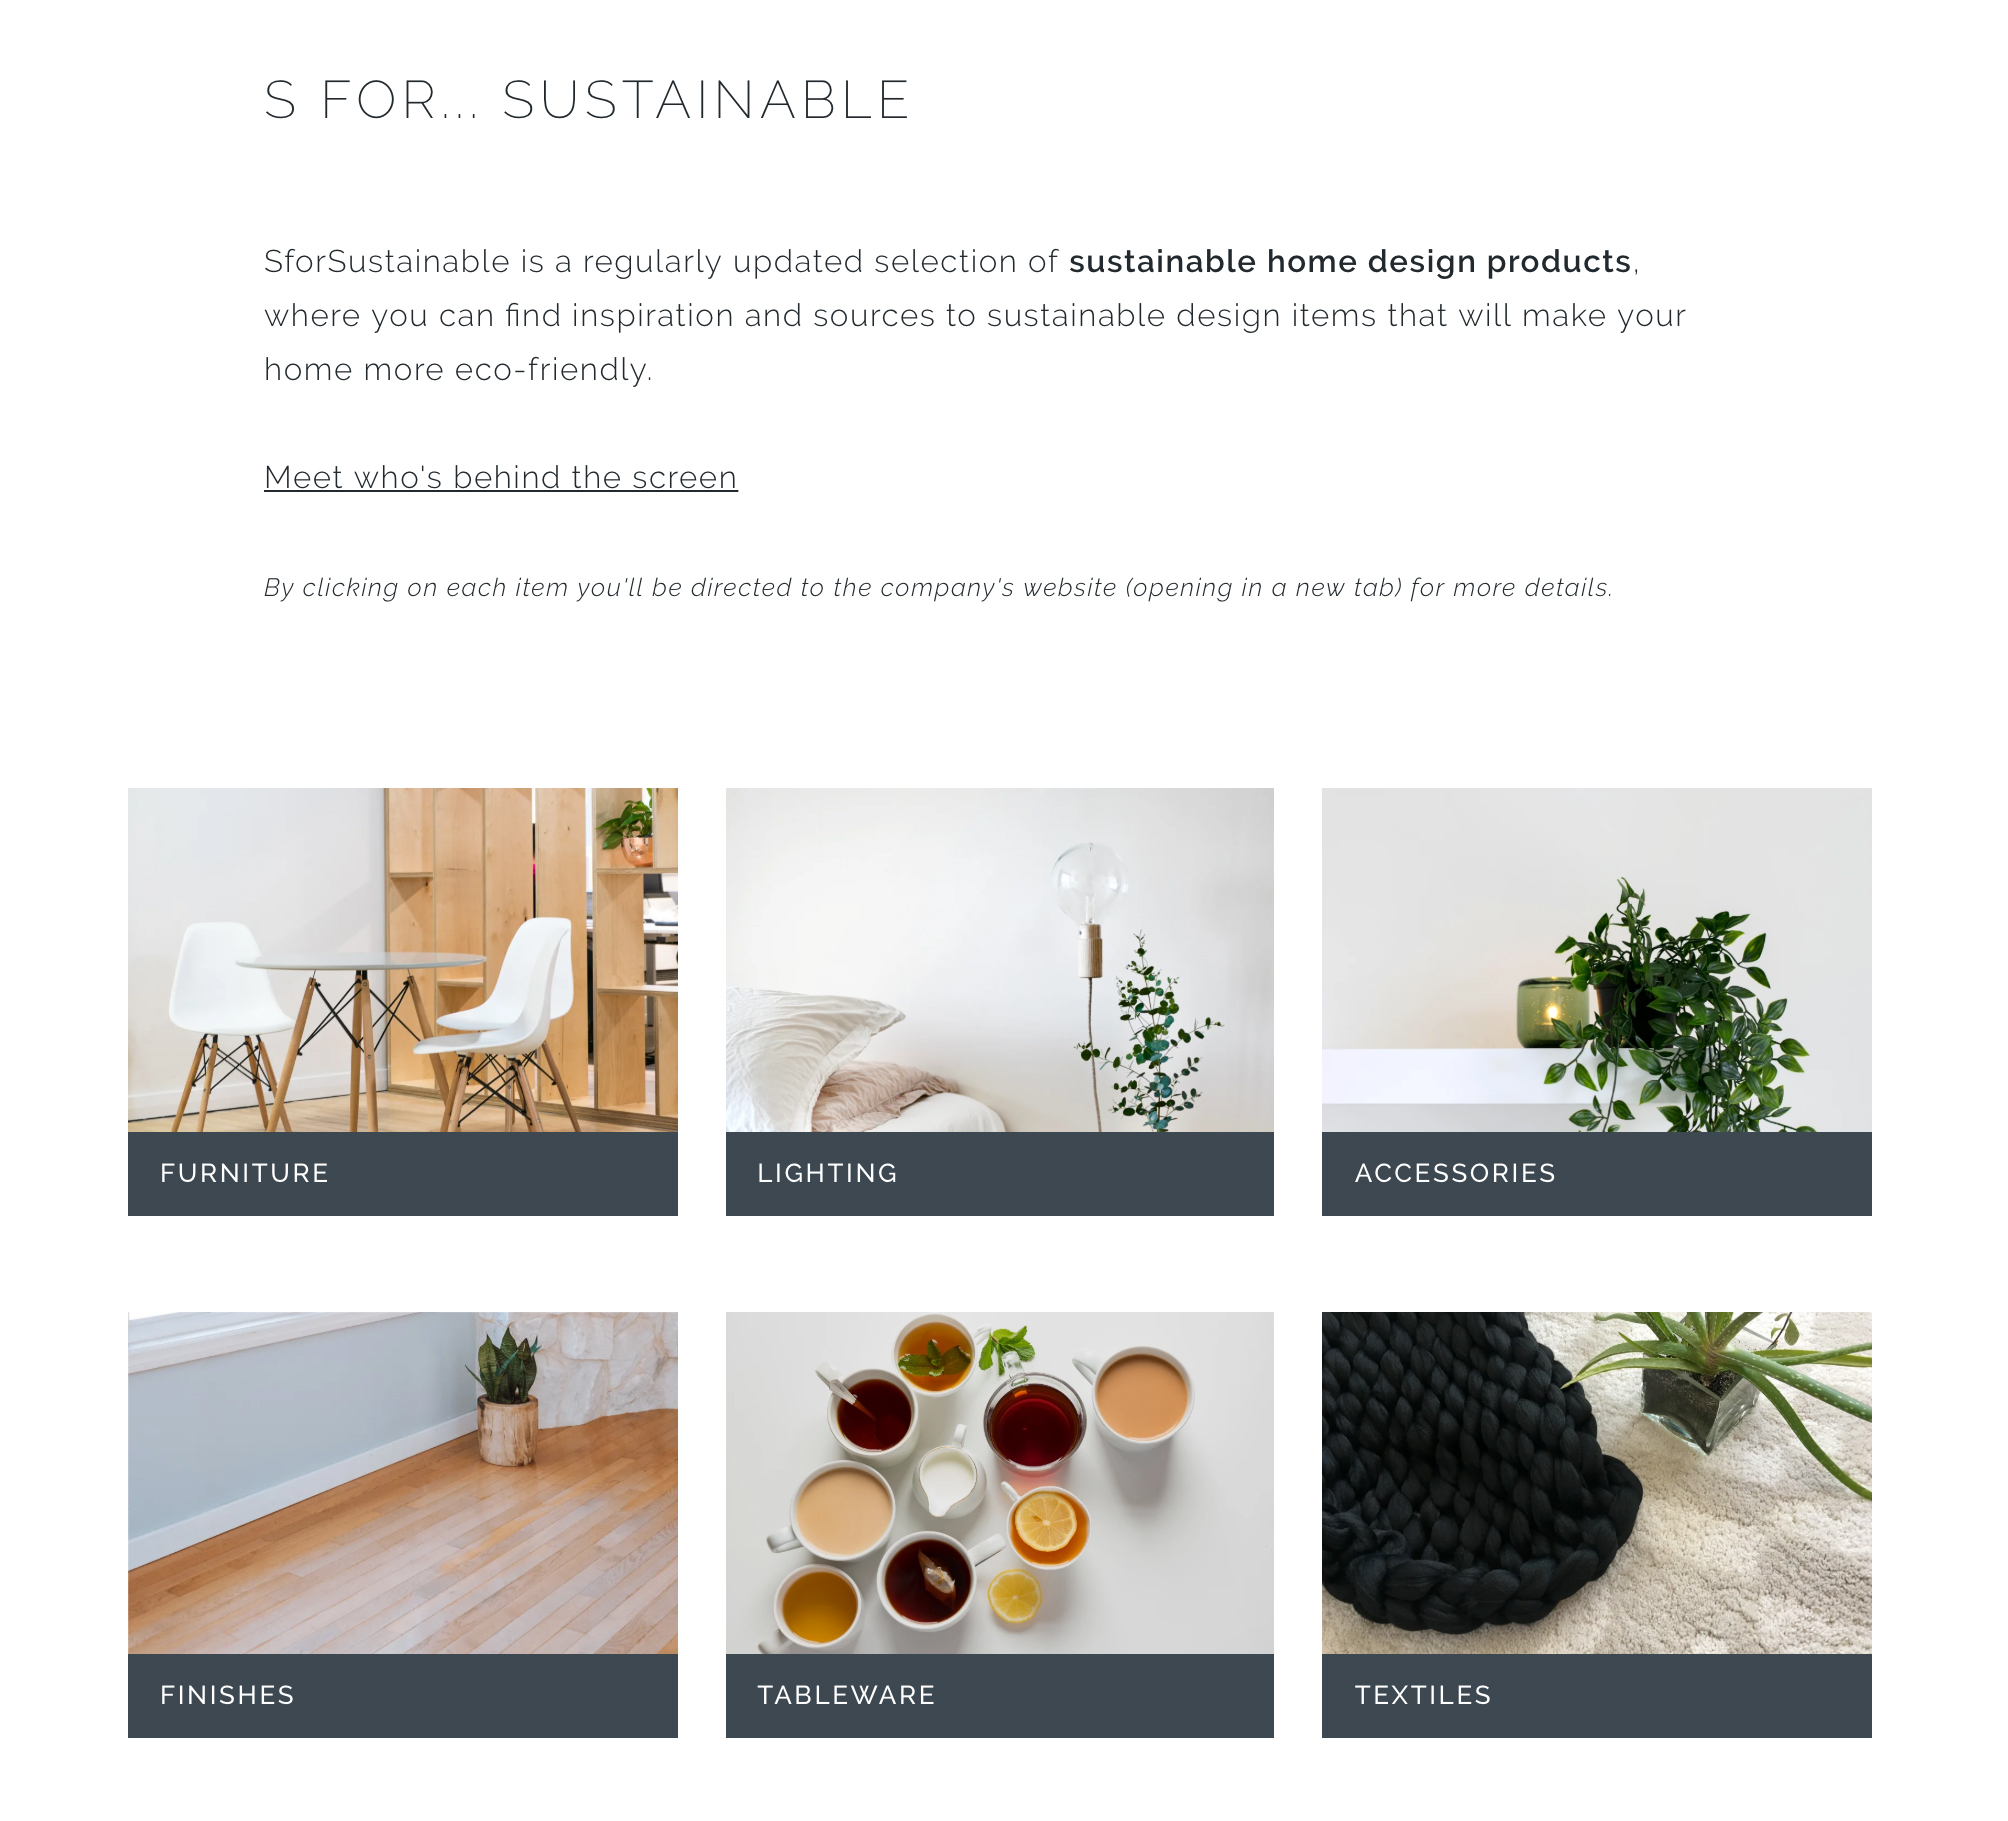 Screenshot of the SforSustainable page.